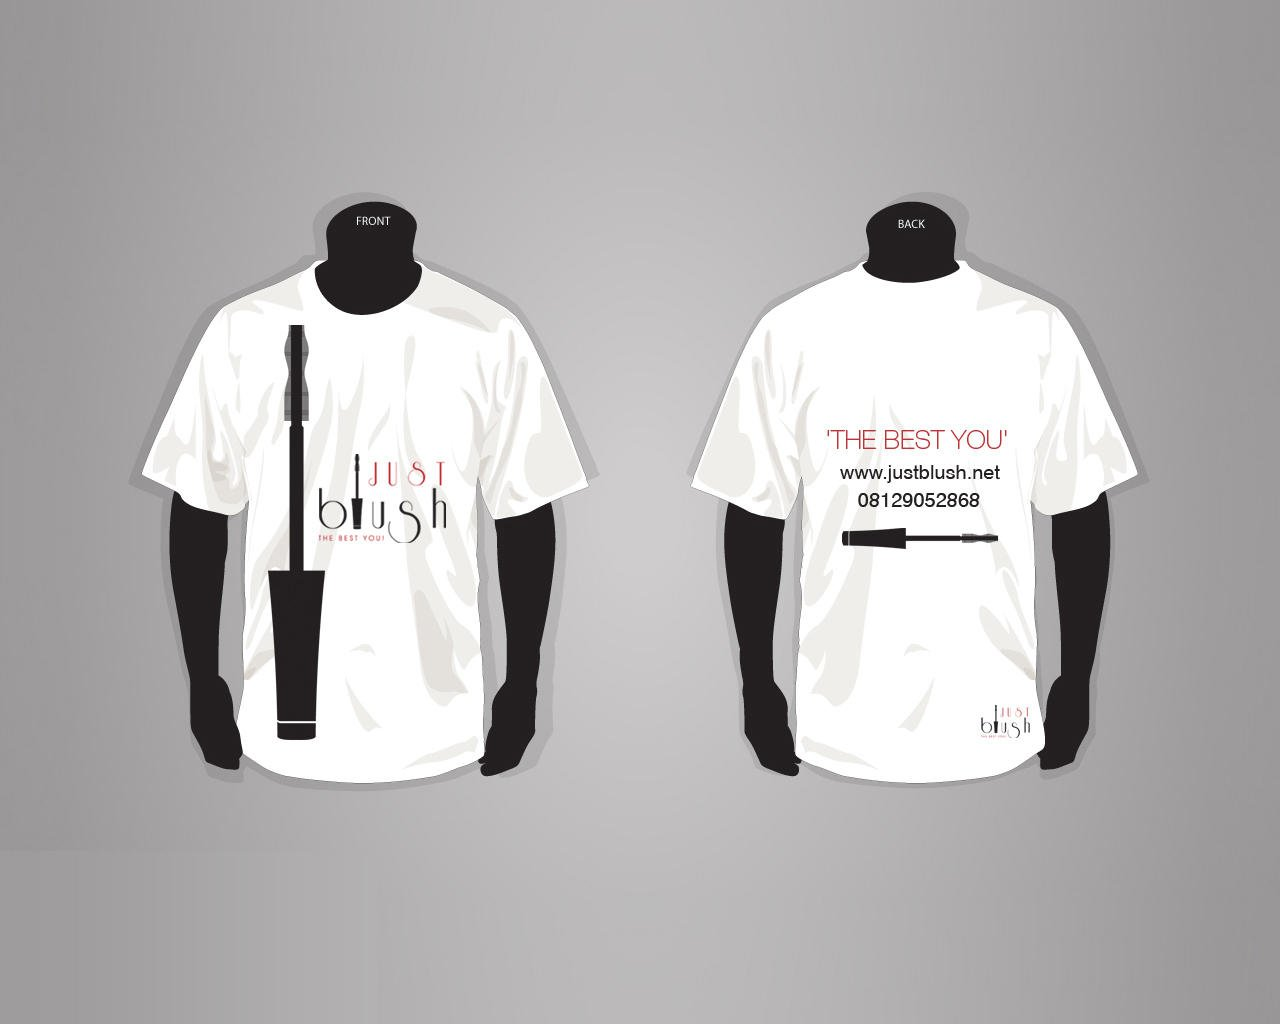 Professional T-shirt Design by sudiptaexpert - 74337